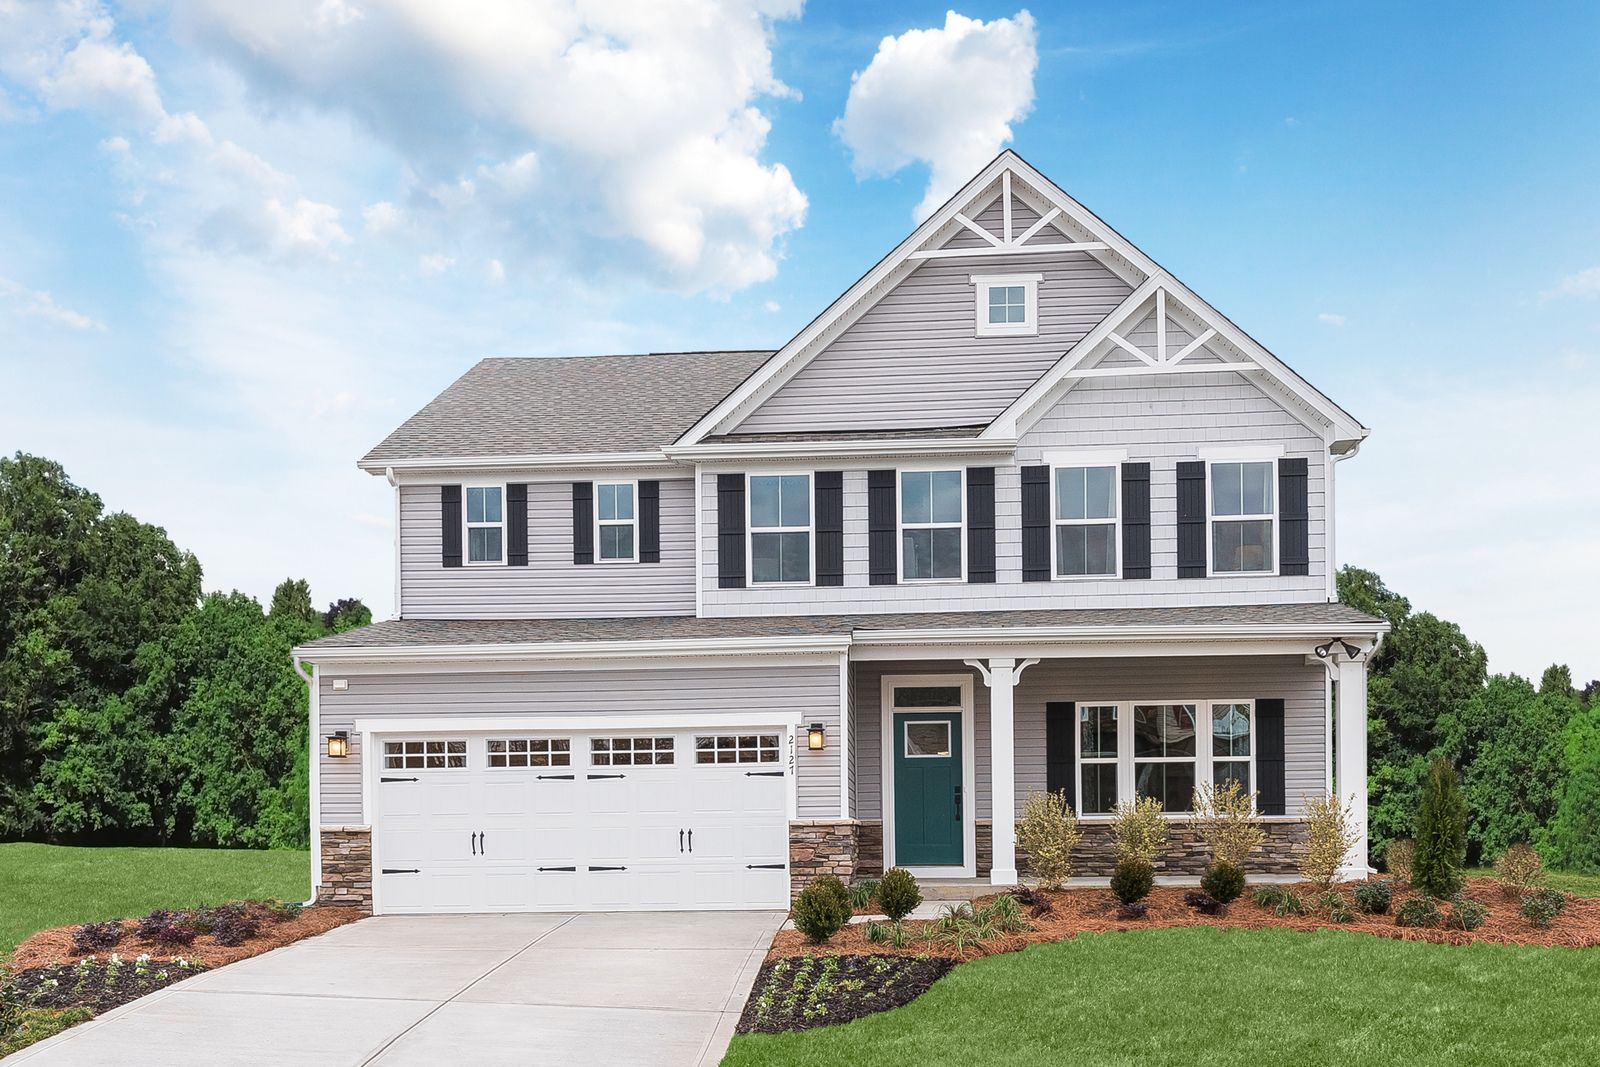 JOIN THE FAIRWAY PINES VIP LIST TODAY!:Riverside Schools Premier Community, minutes from Concord and Mentor. 2-story and ranch homes with community pool!Click here to join the VIP List!